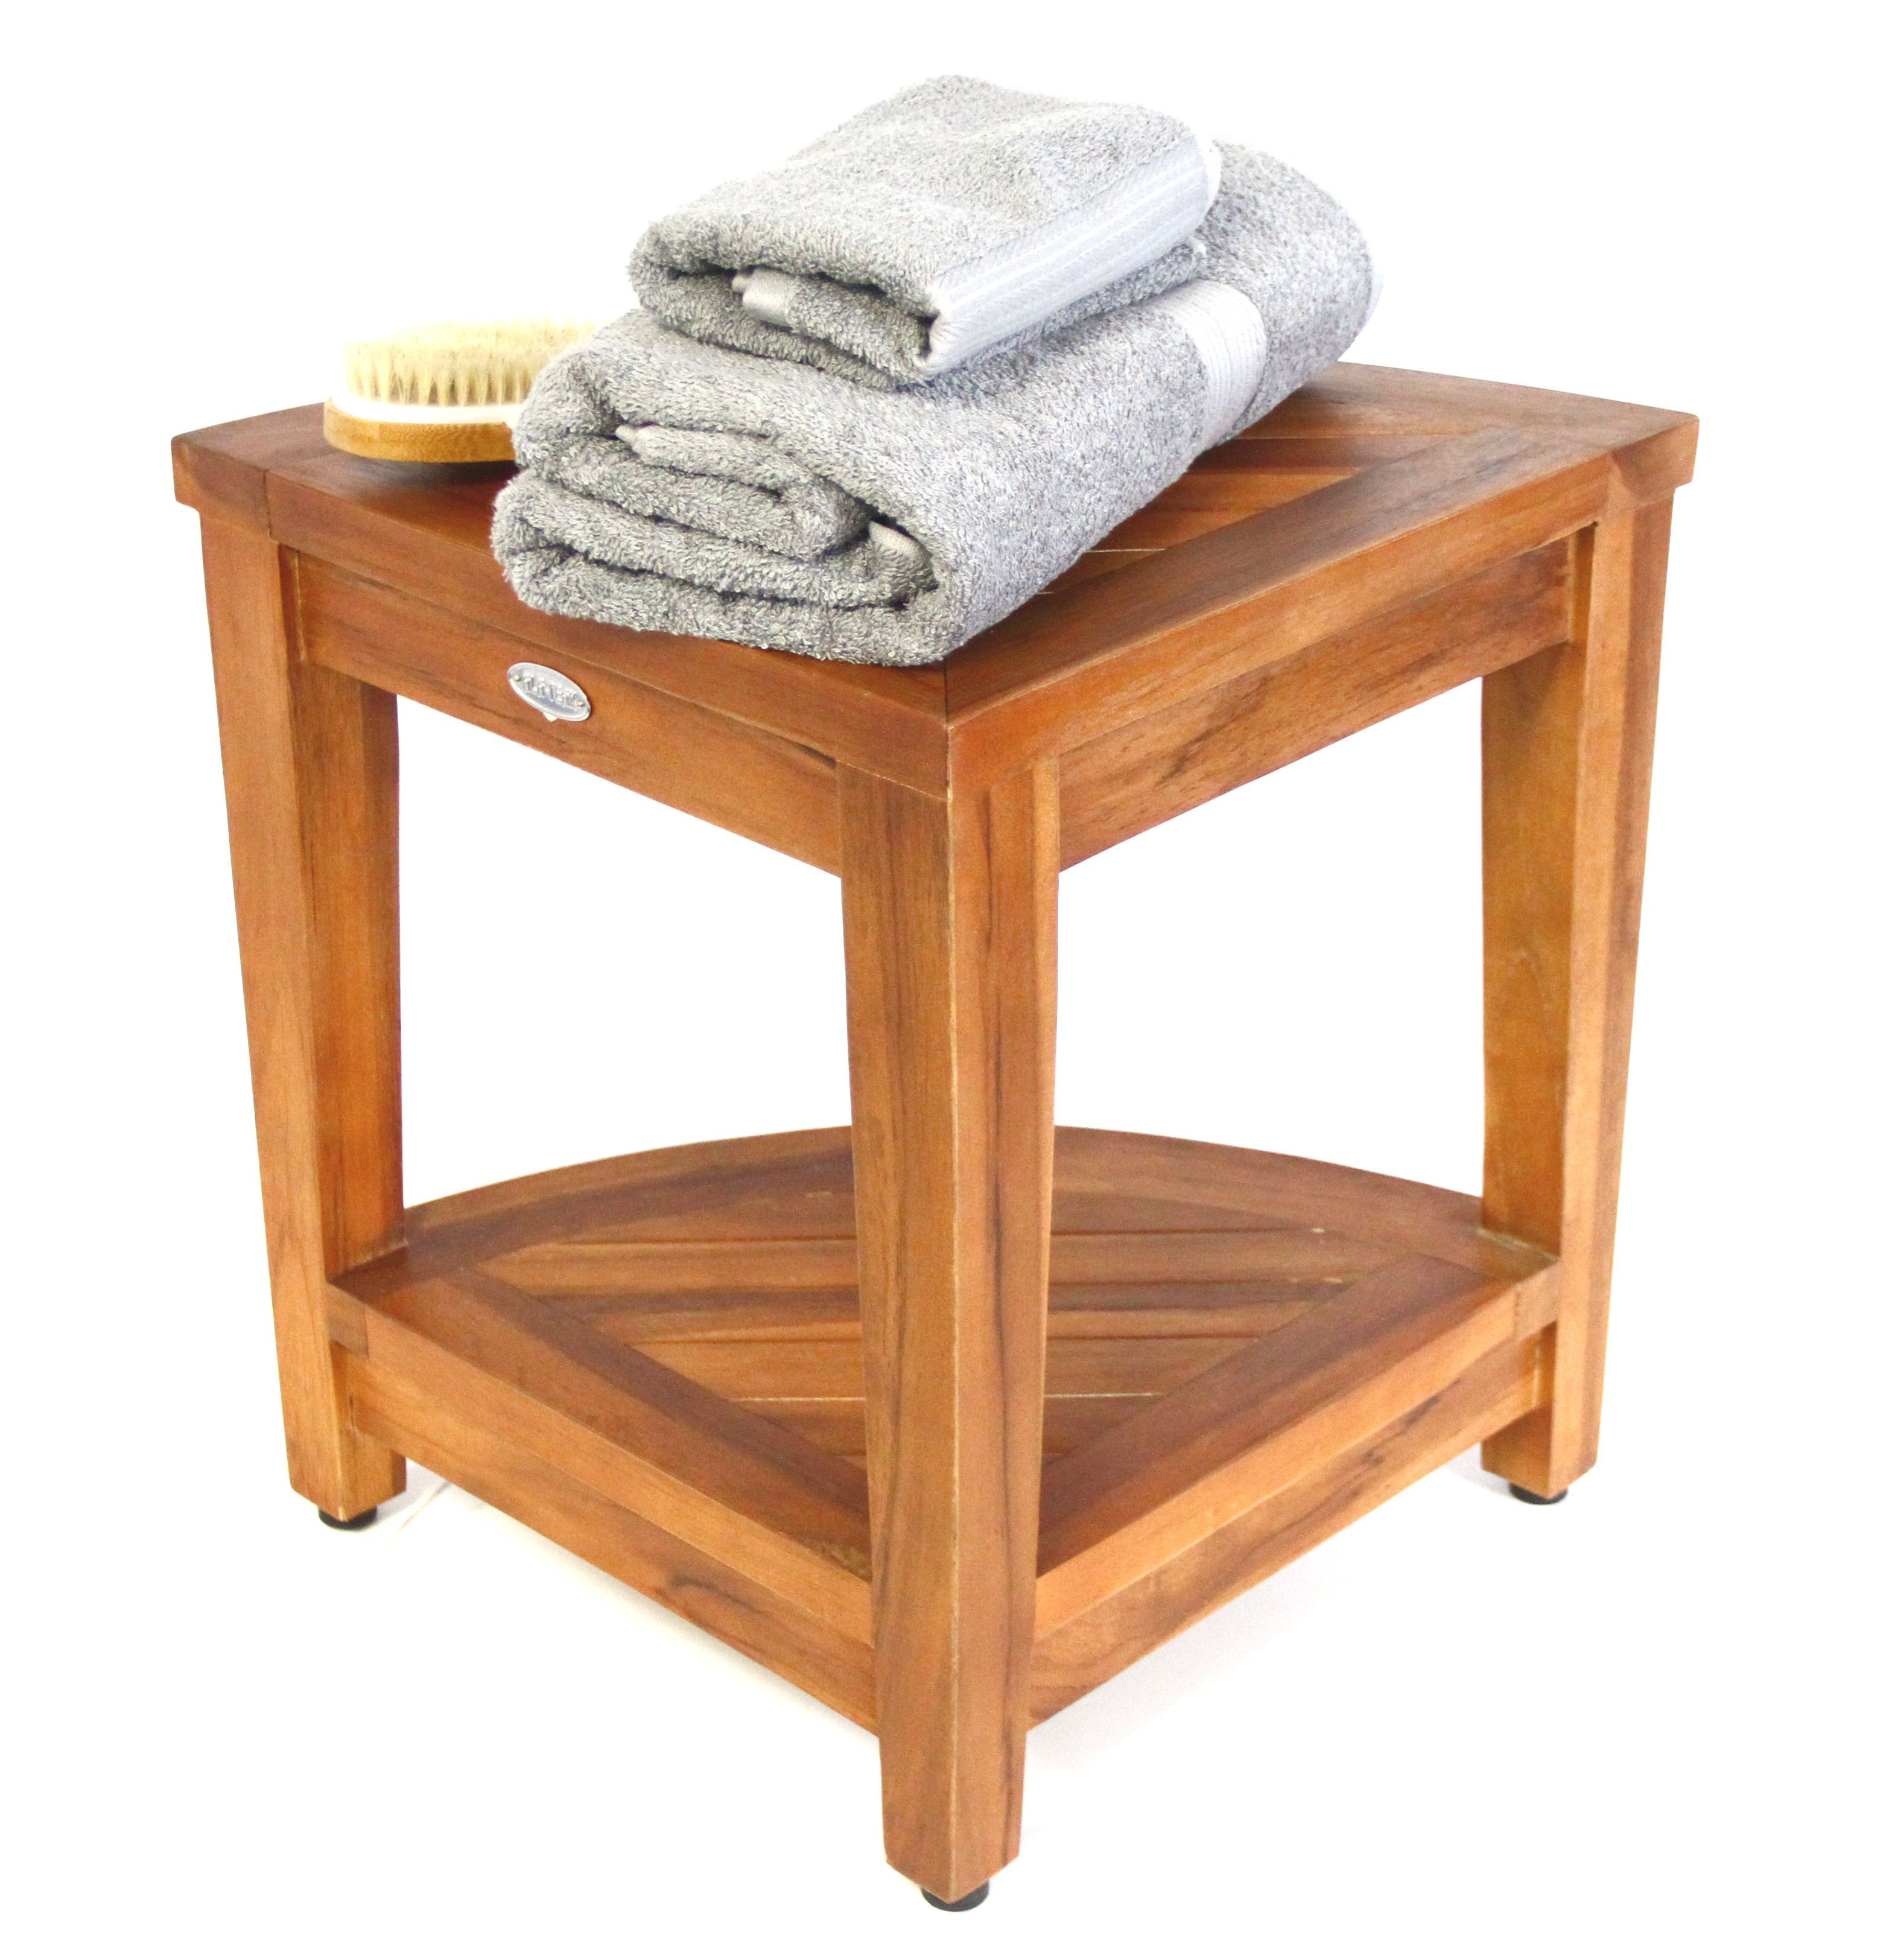 new fully inch patented bench corner tranquility design storage stool shelf amazon com style eastern sitting dp teak oasis assembled with shower